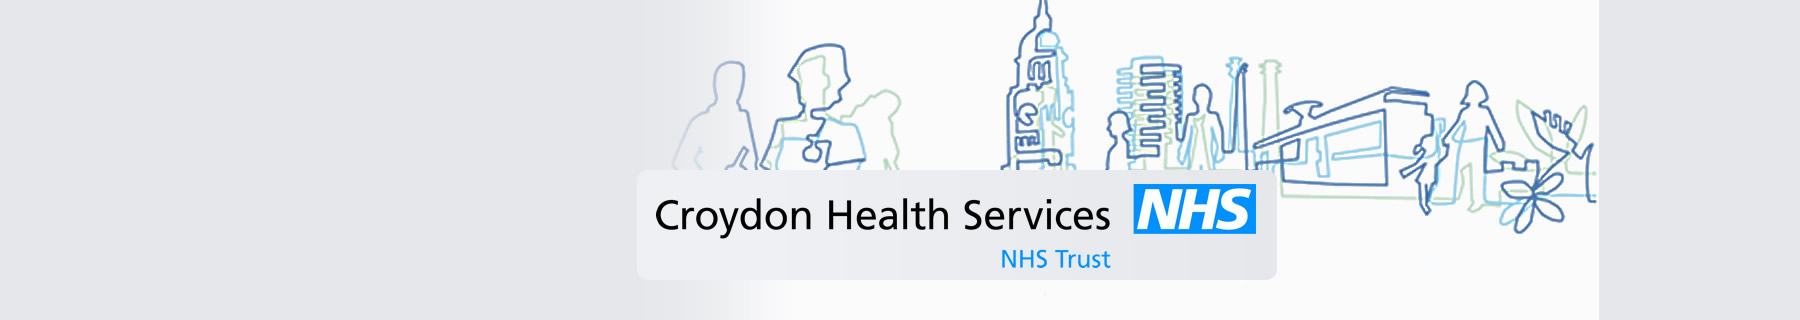 X-on integrated mobile and fixed line call recording into the existing Croydon Health Services phone system